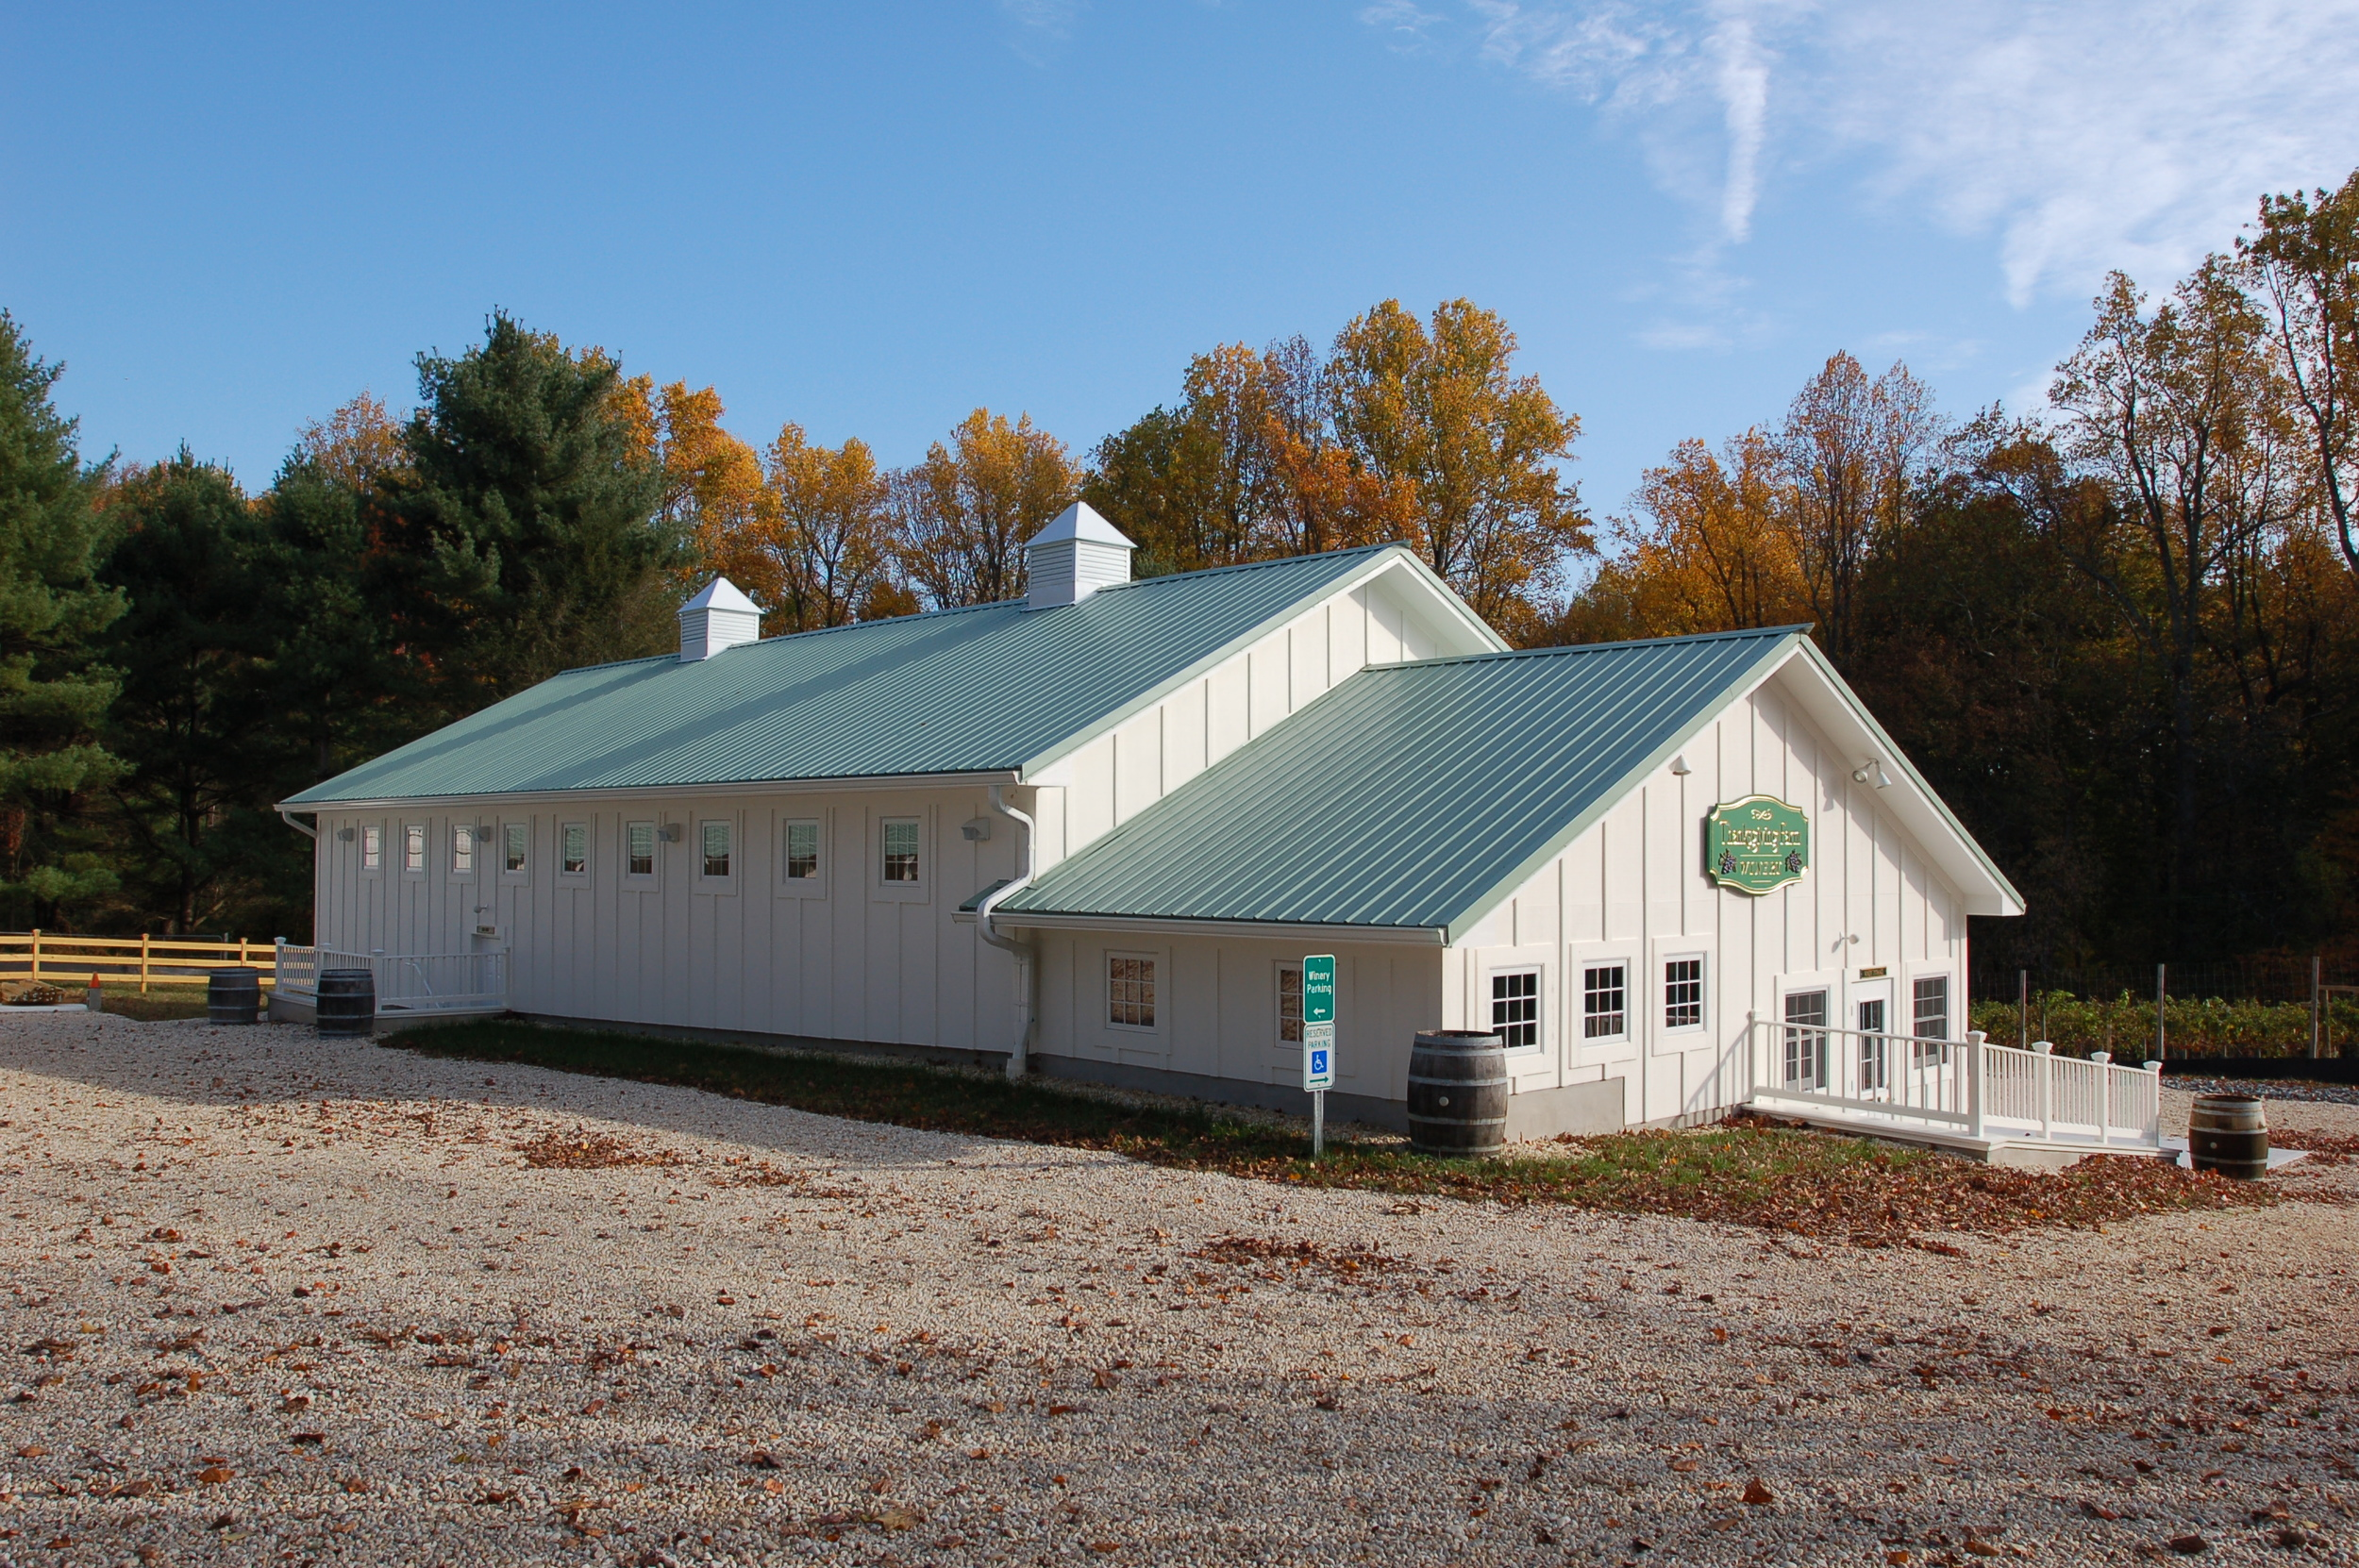 Our Winery Building